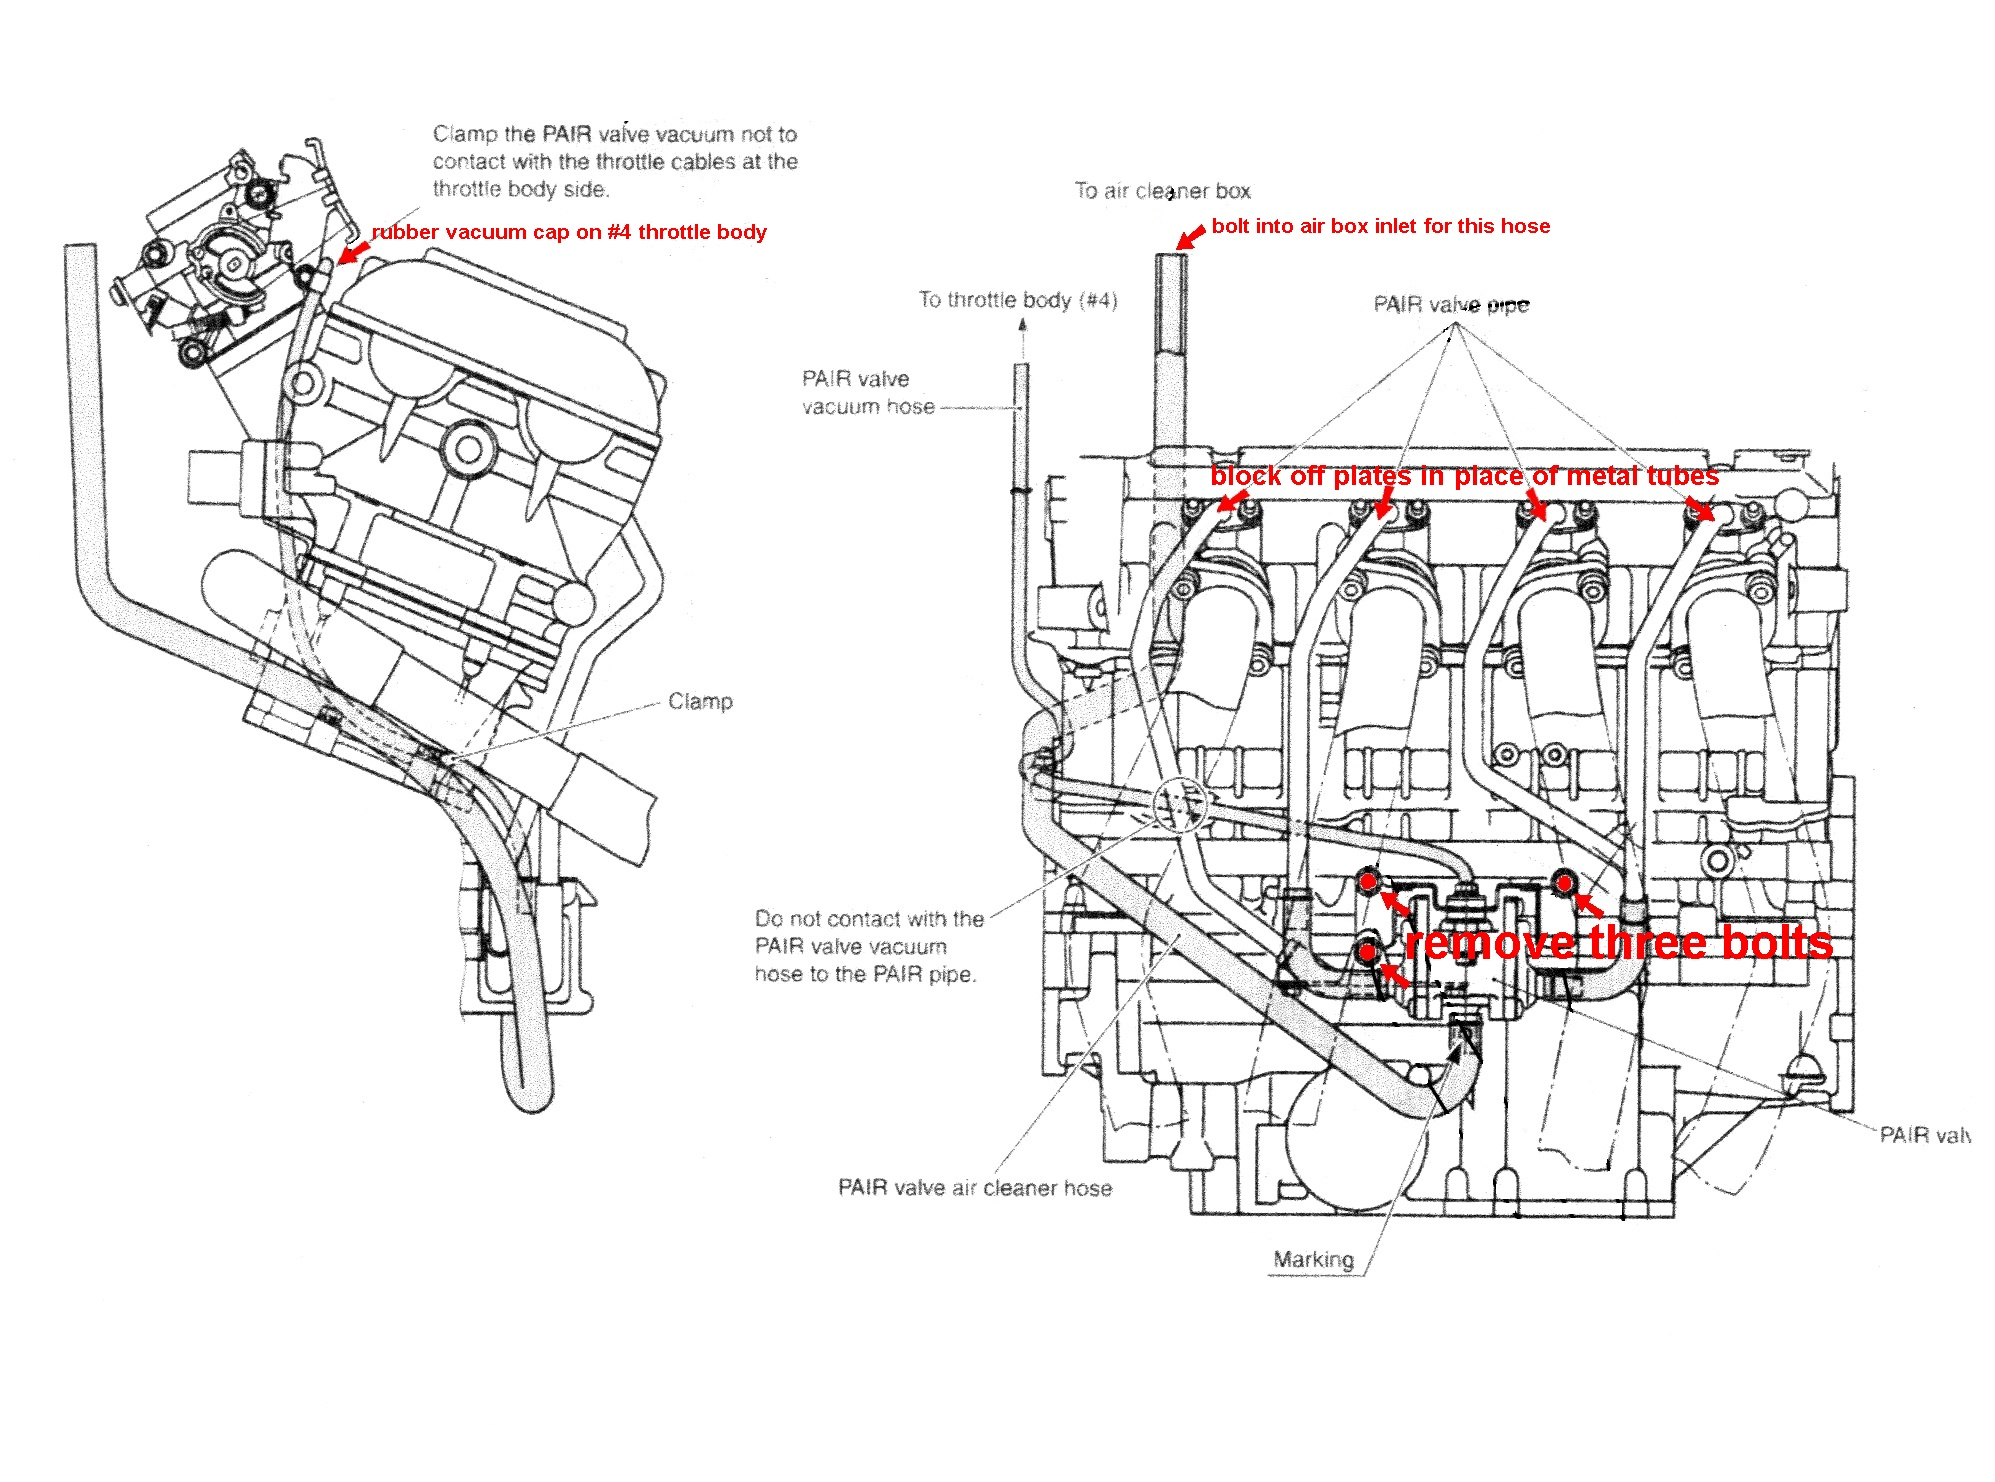 2000 Suzuki Hayabusa Modifications Pair Valve Removal Honda Accord Engine Diagram  Hayabusa Engine Diagram